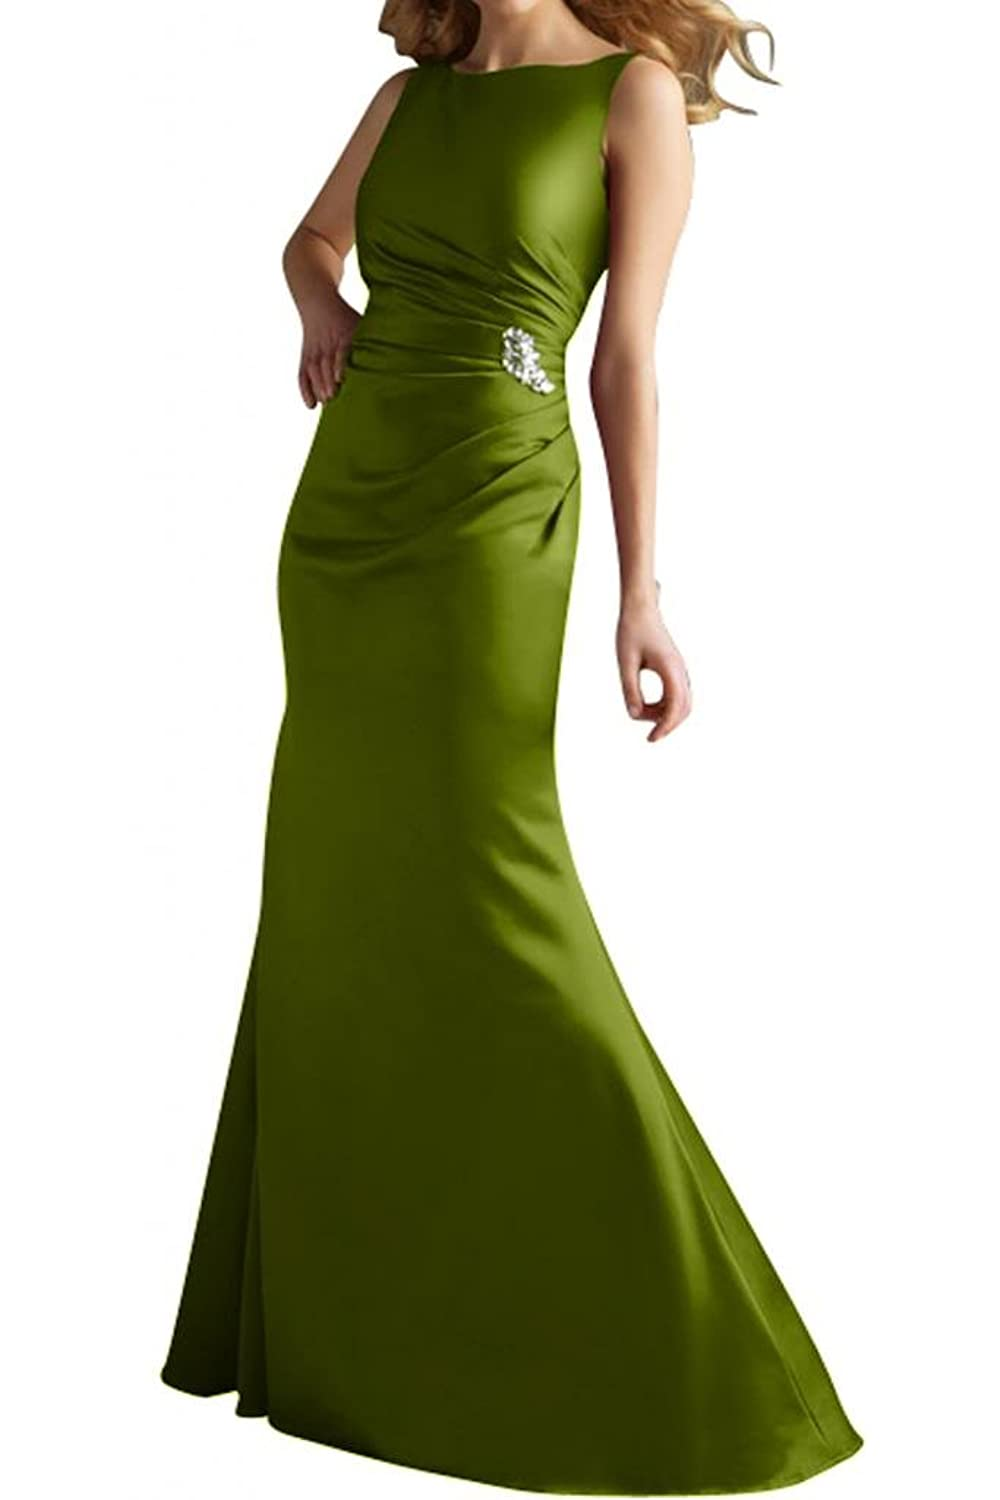 Gorgeous Bride Bateau Rhinestone Sheath Trumpet Sexy Satin Evening Dresses